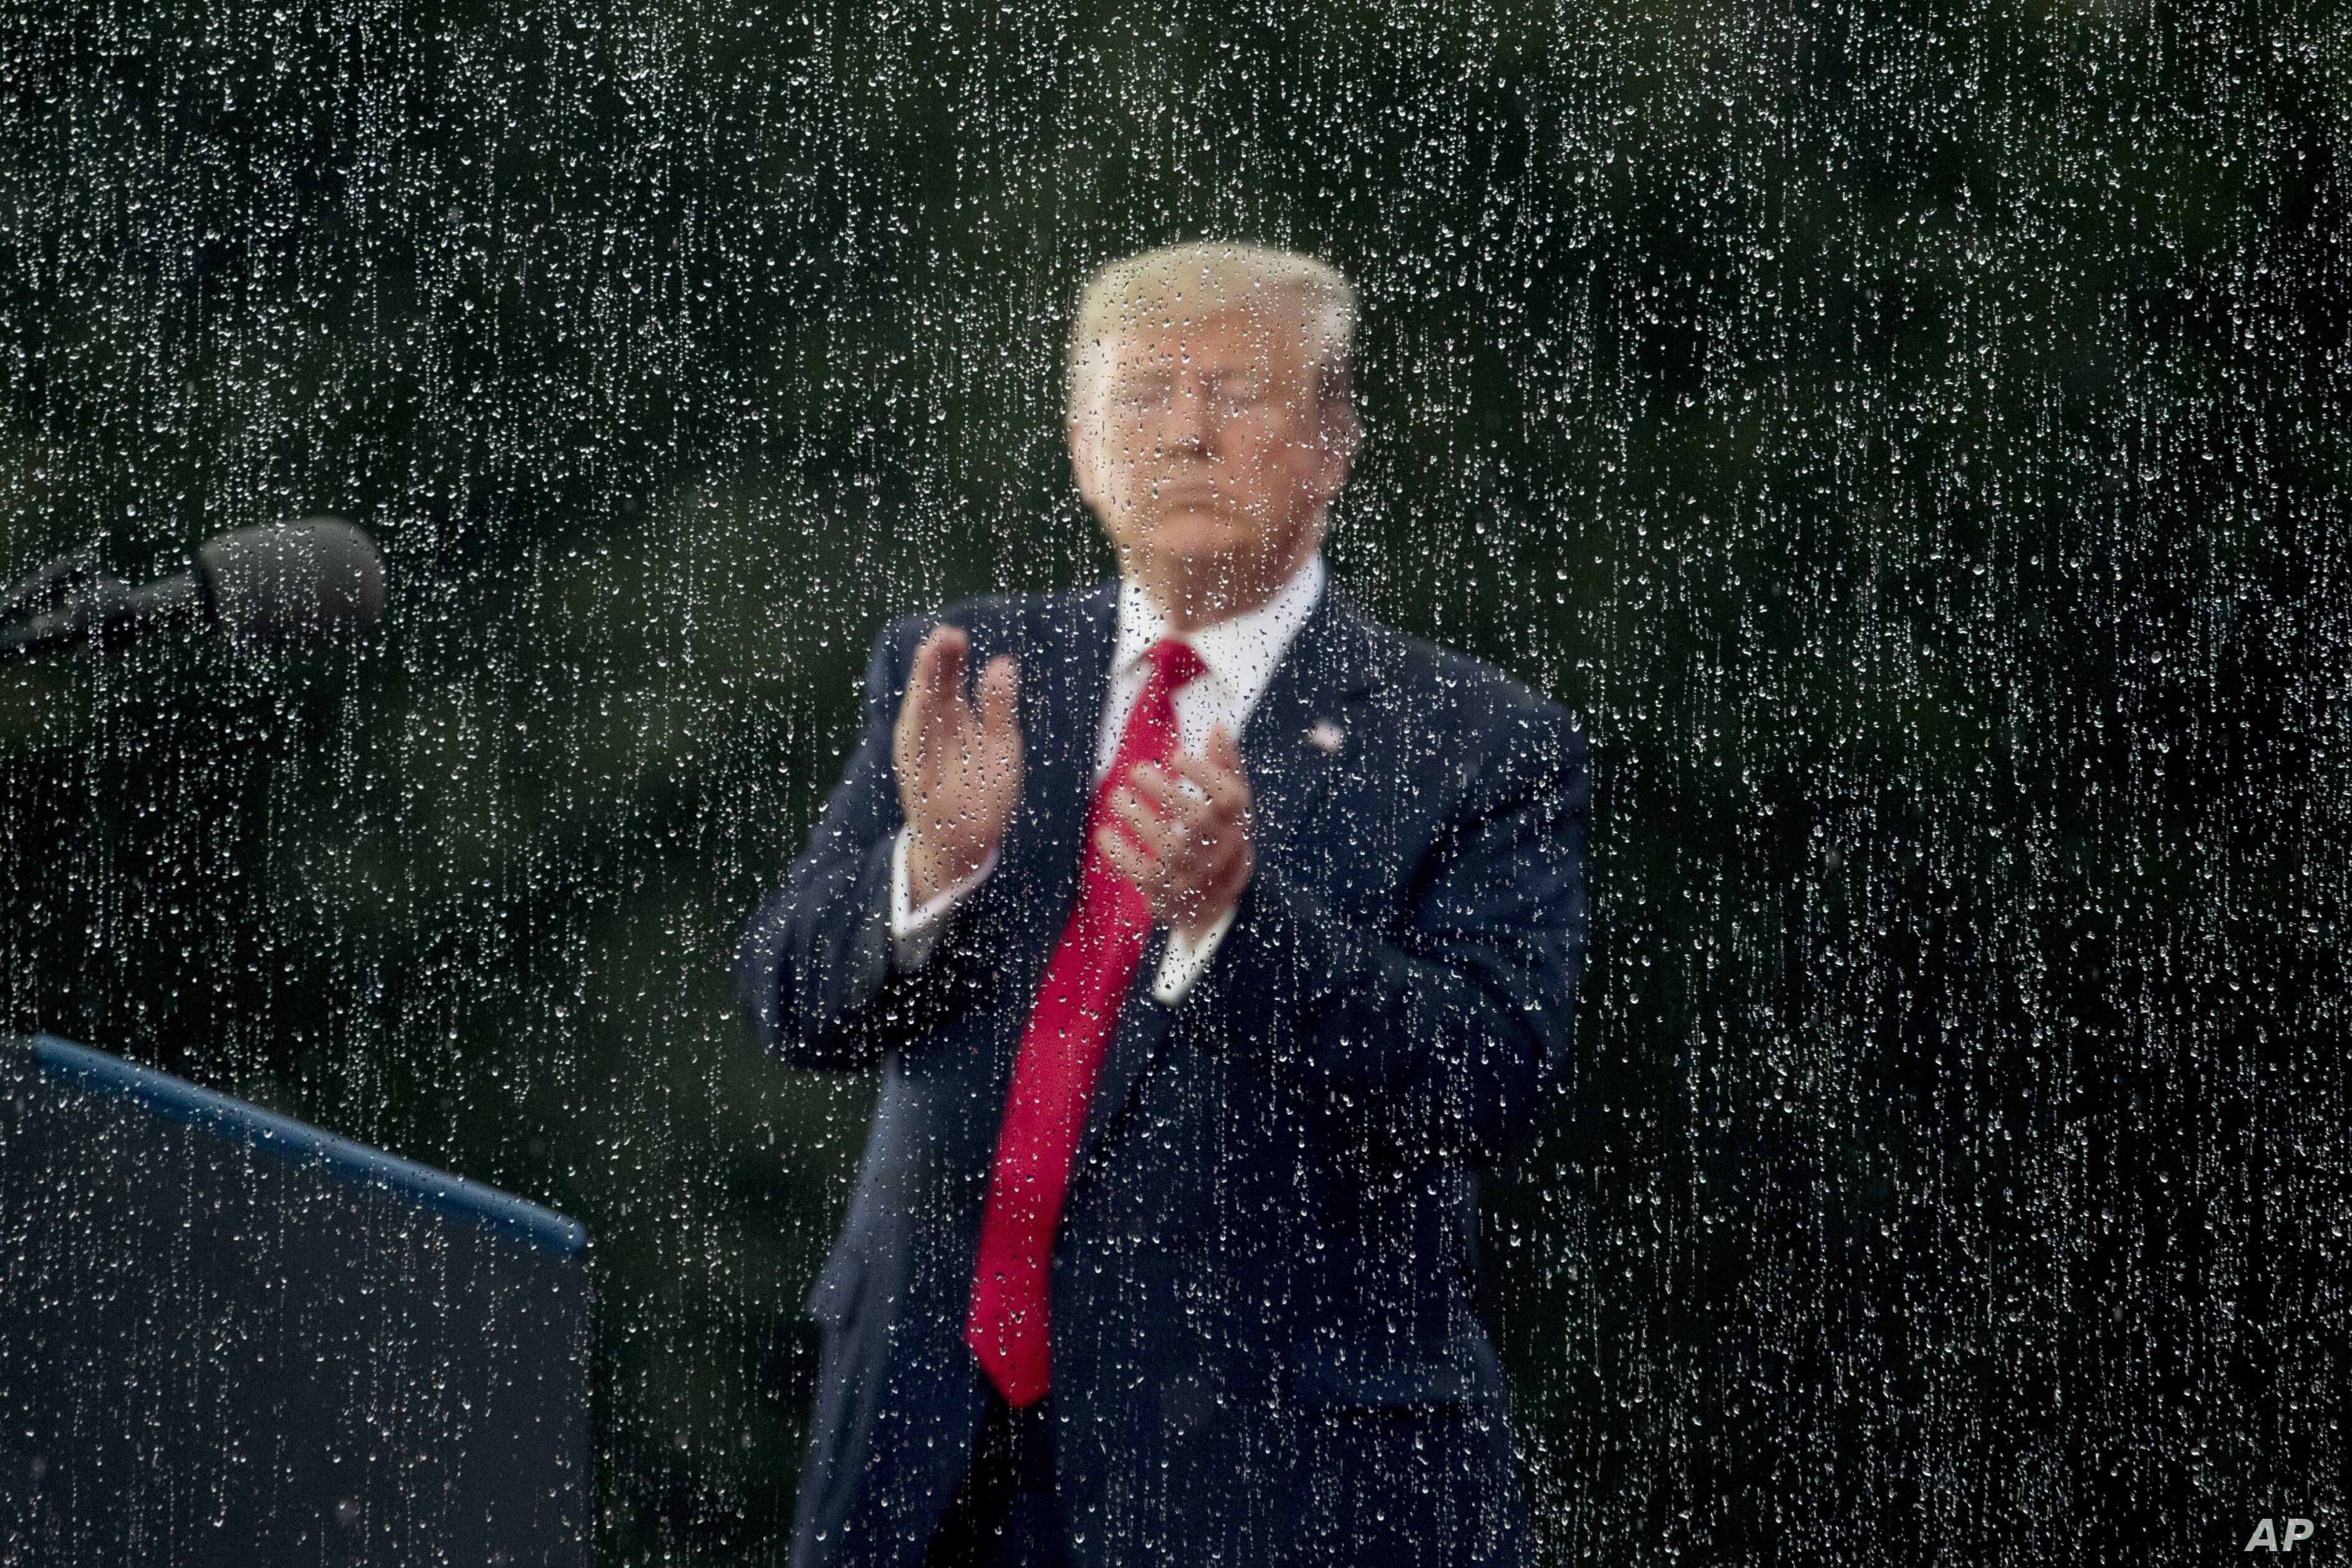 President Donald Trump applauds during an Independence Day celebration in front of the Lincoln Memorial, July 4, 2019, in Washington.